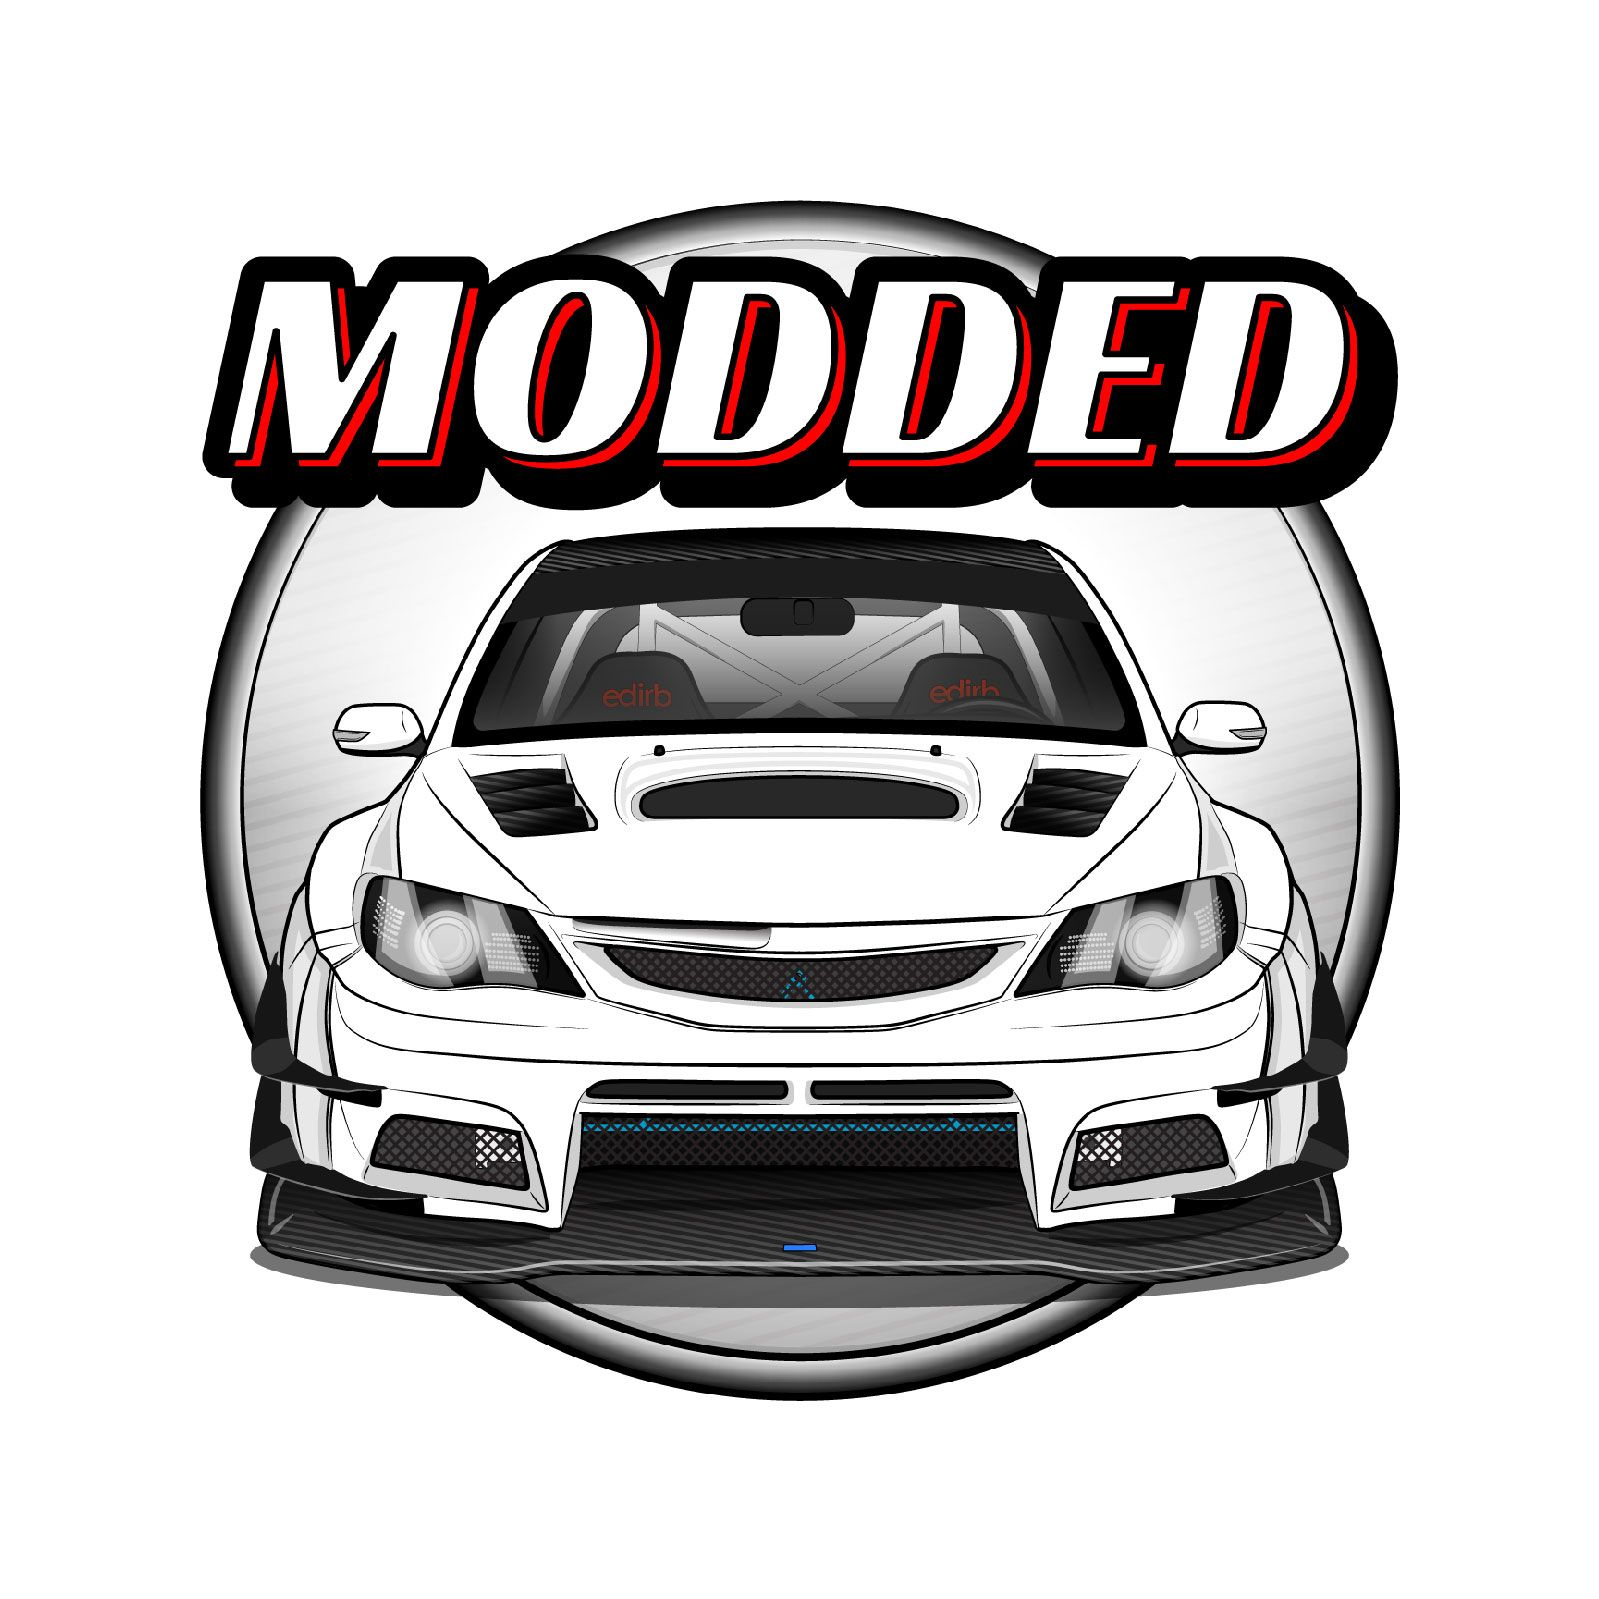 Modded on Apple Podcasts